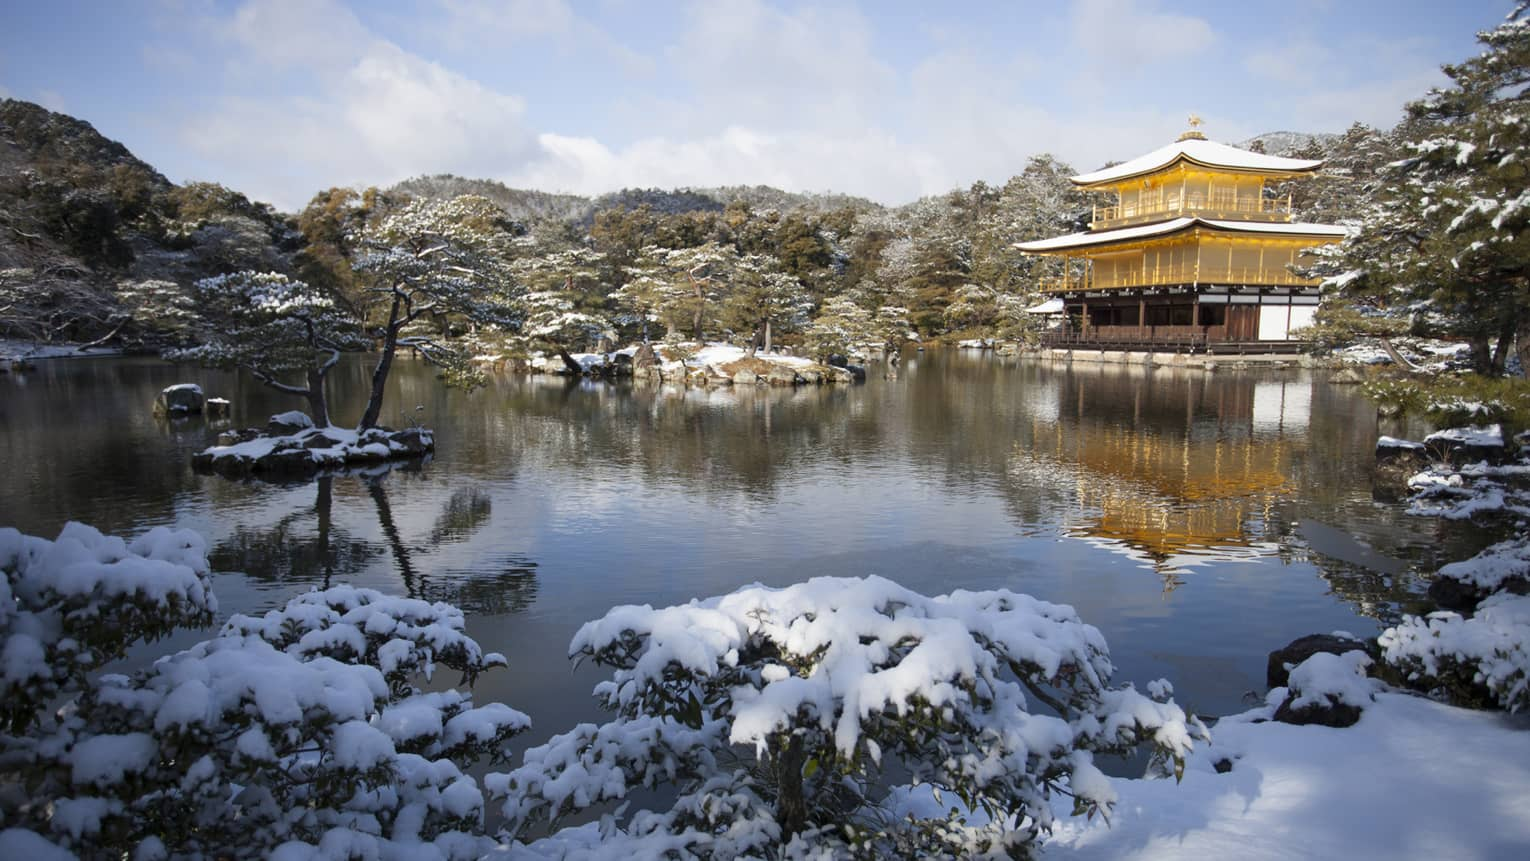 Golden Temple in Kyoto Japan covered with snow by the lake